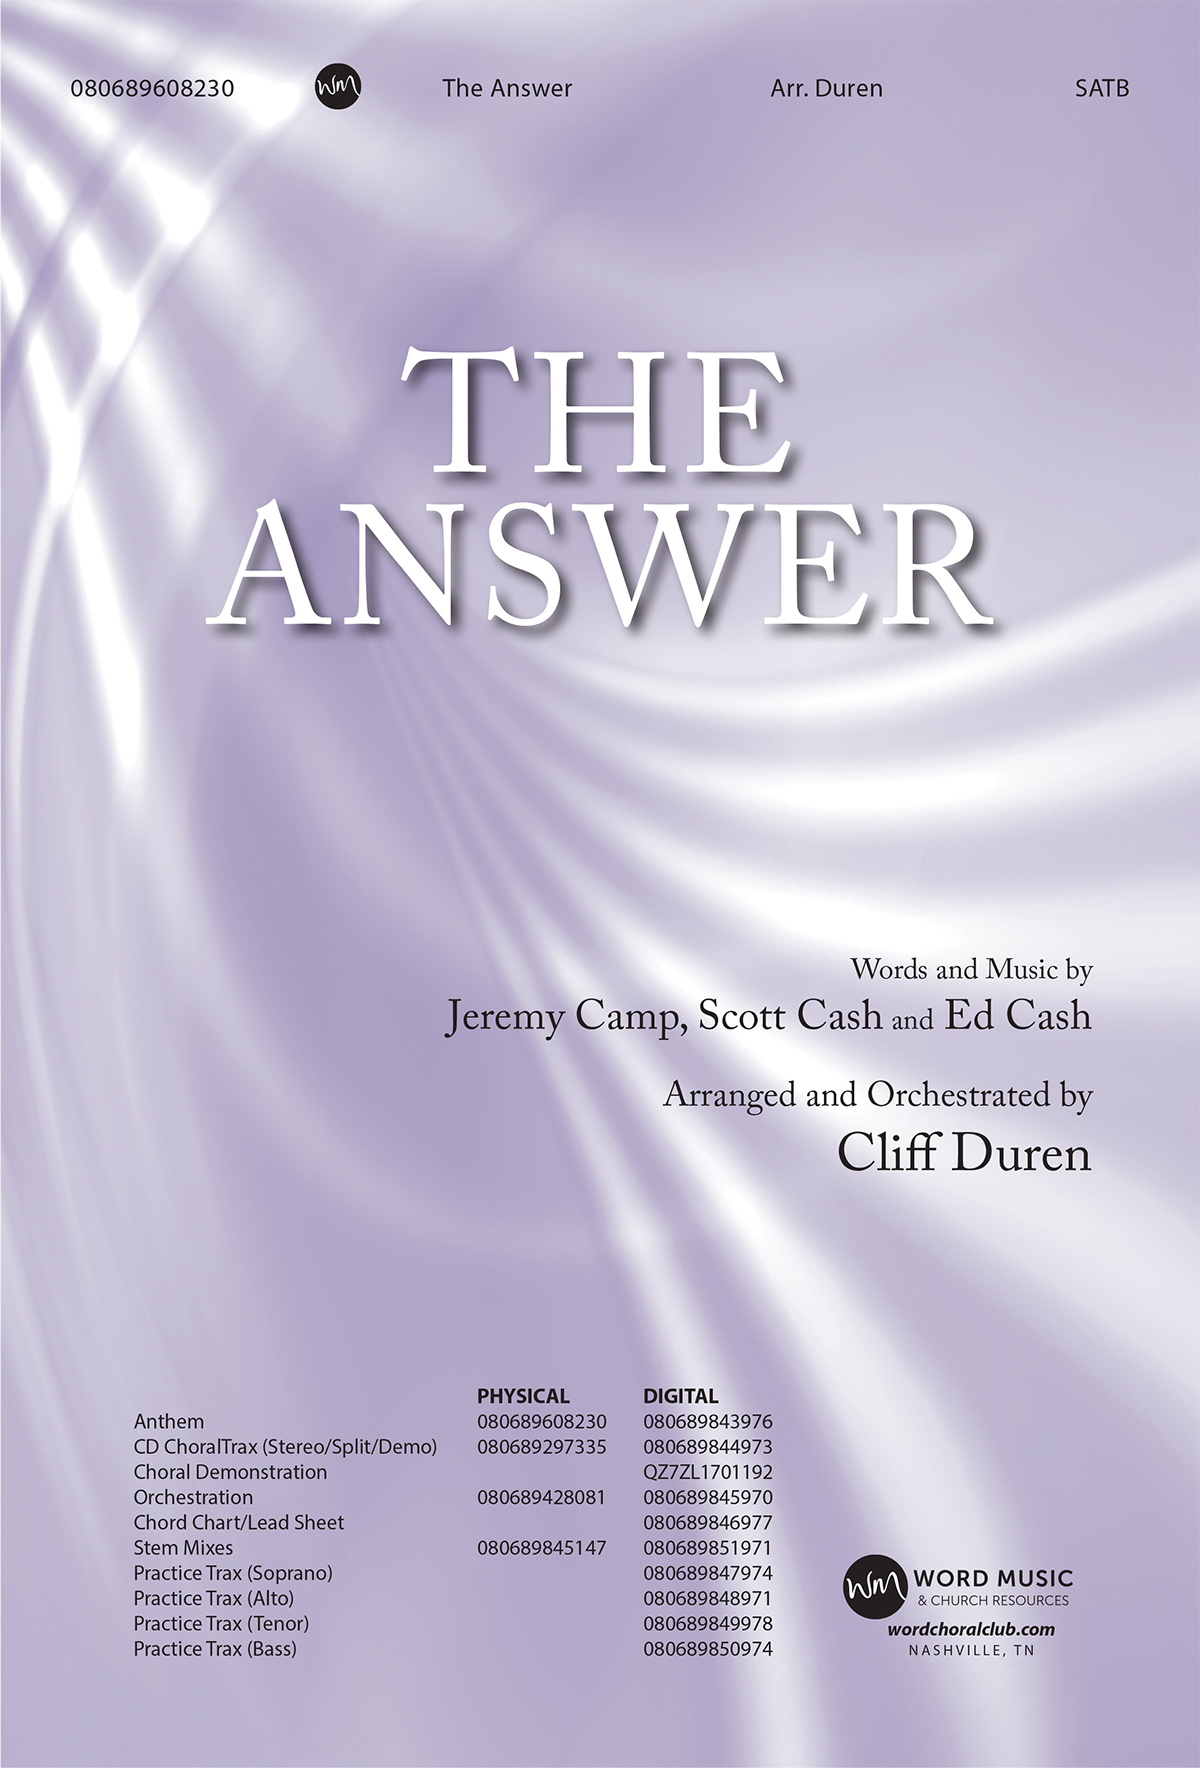 The Answer - STM [Duren, Cliff]